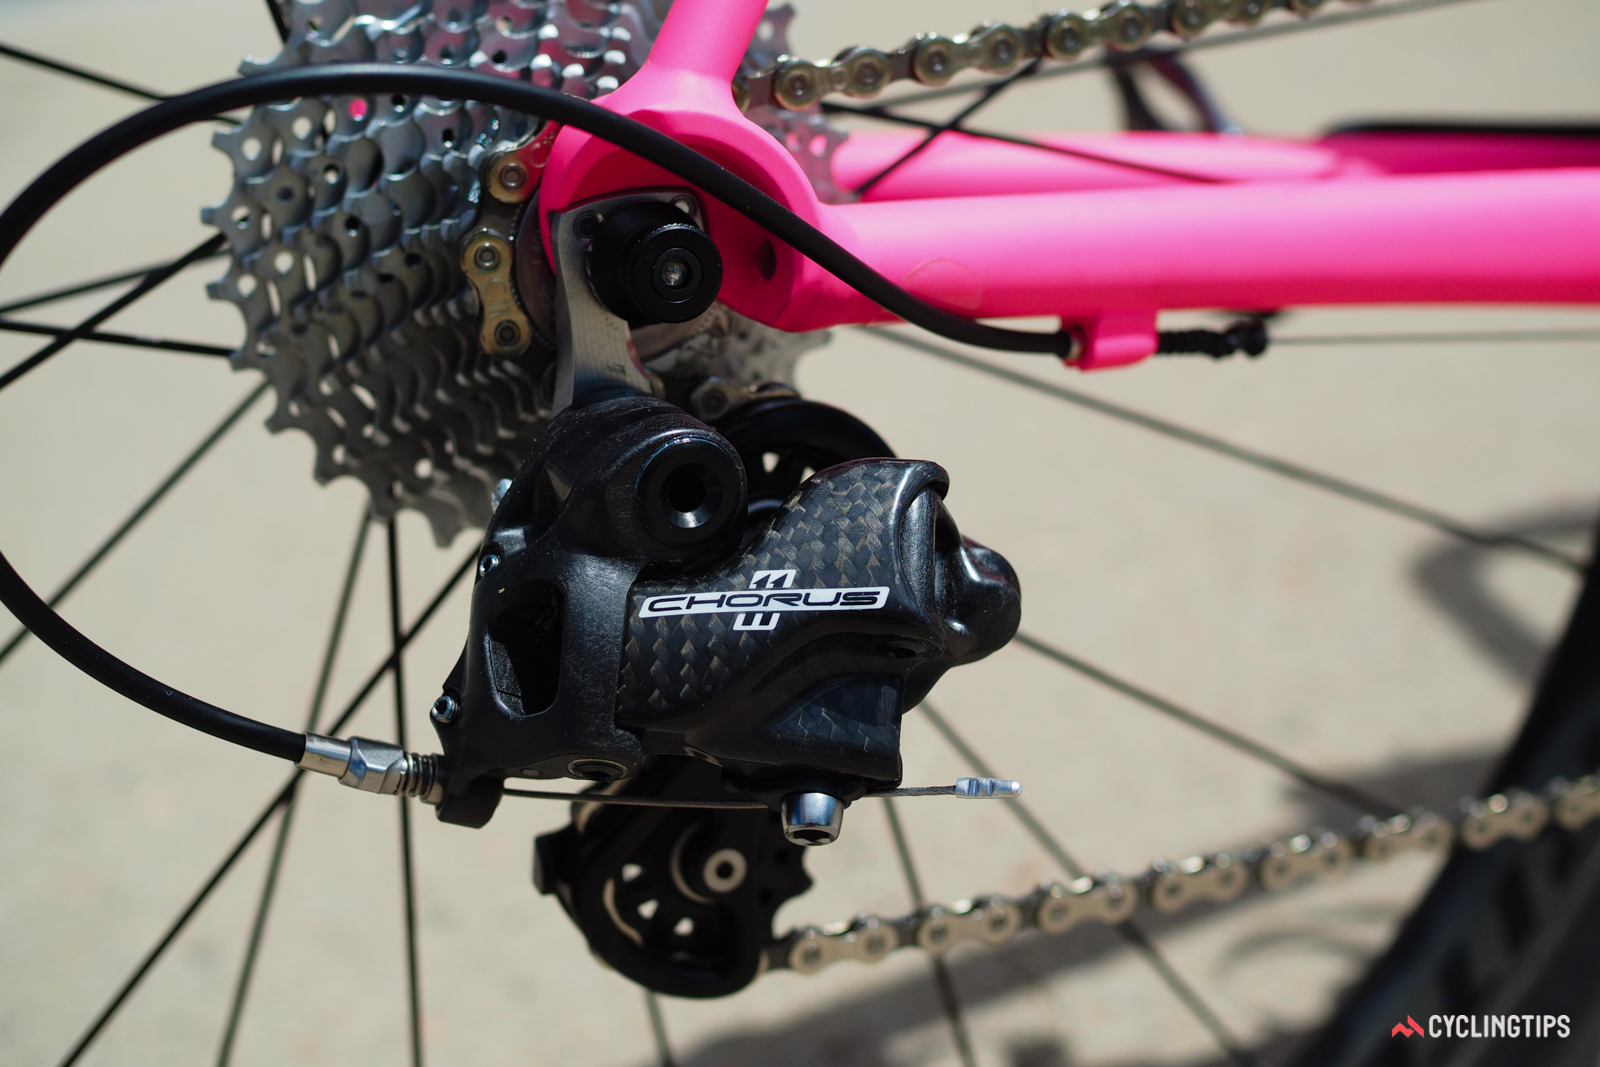 The Campagnolo Chorus rear derailleur doesn't use as much carbon fiber as Record or Super Record but it works just as well. The revised parallelogram geometry provides more chain wrap around each cassette cog than before.